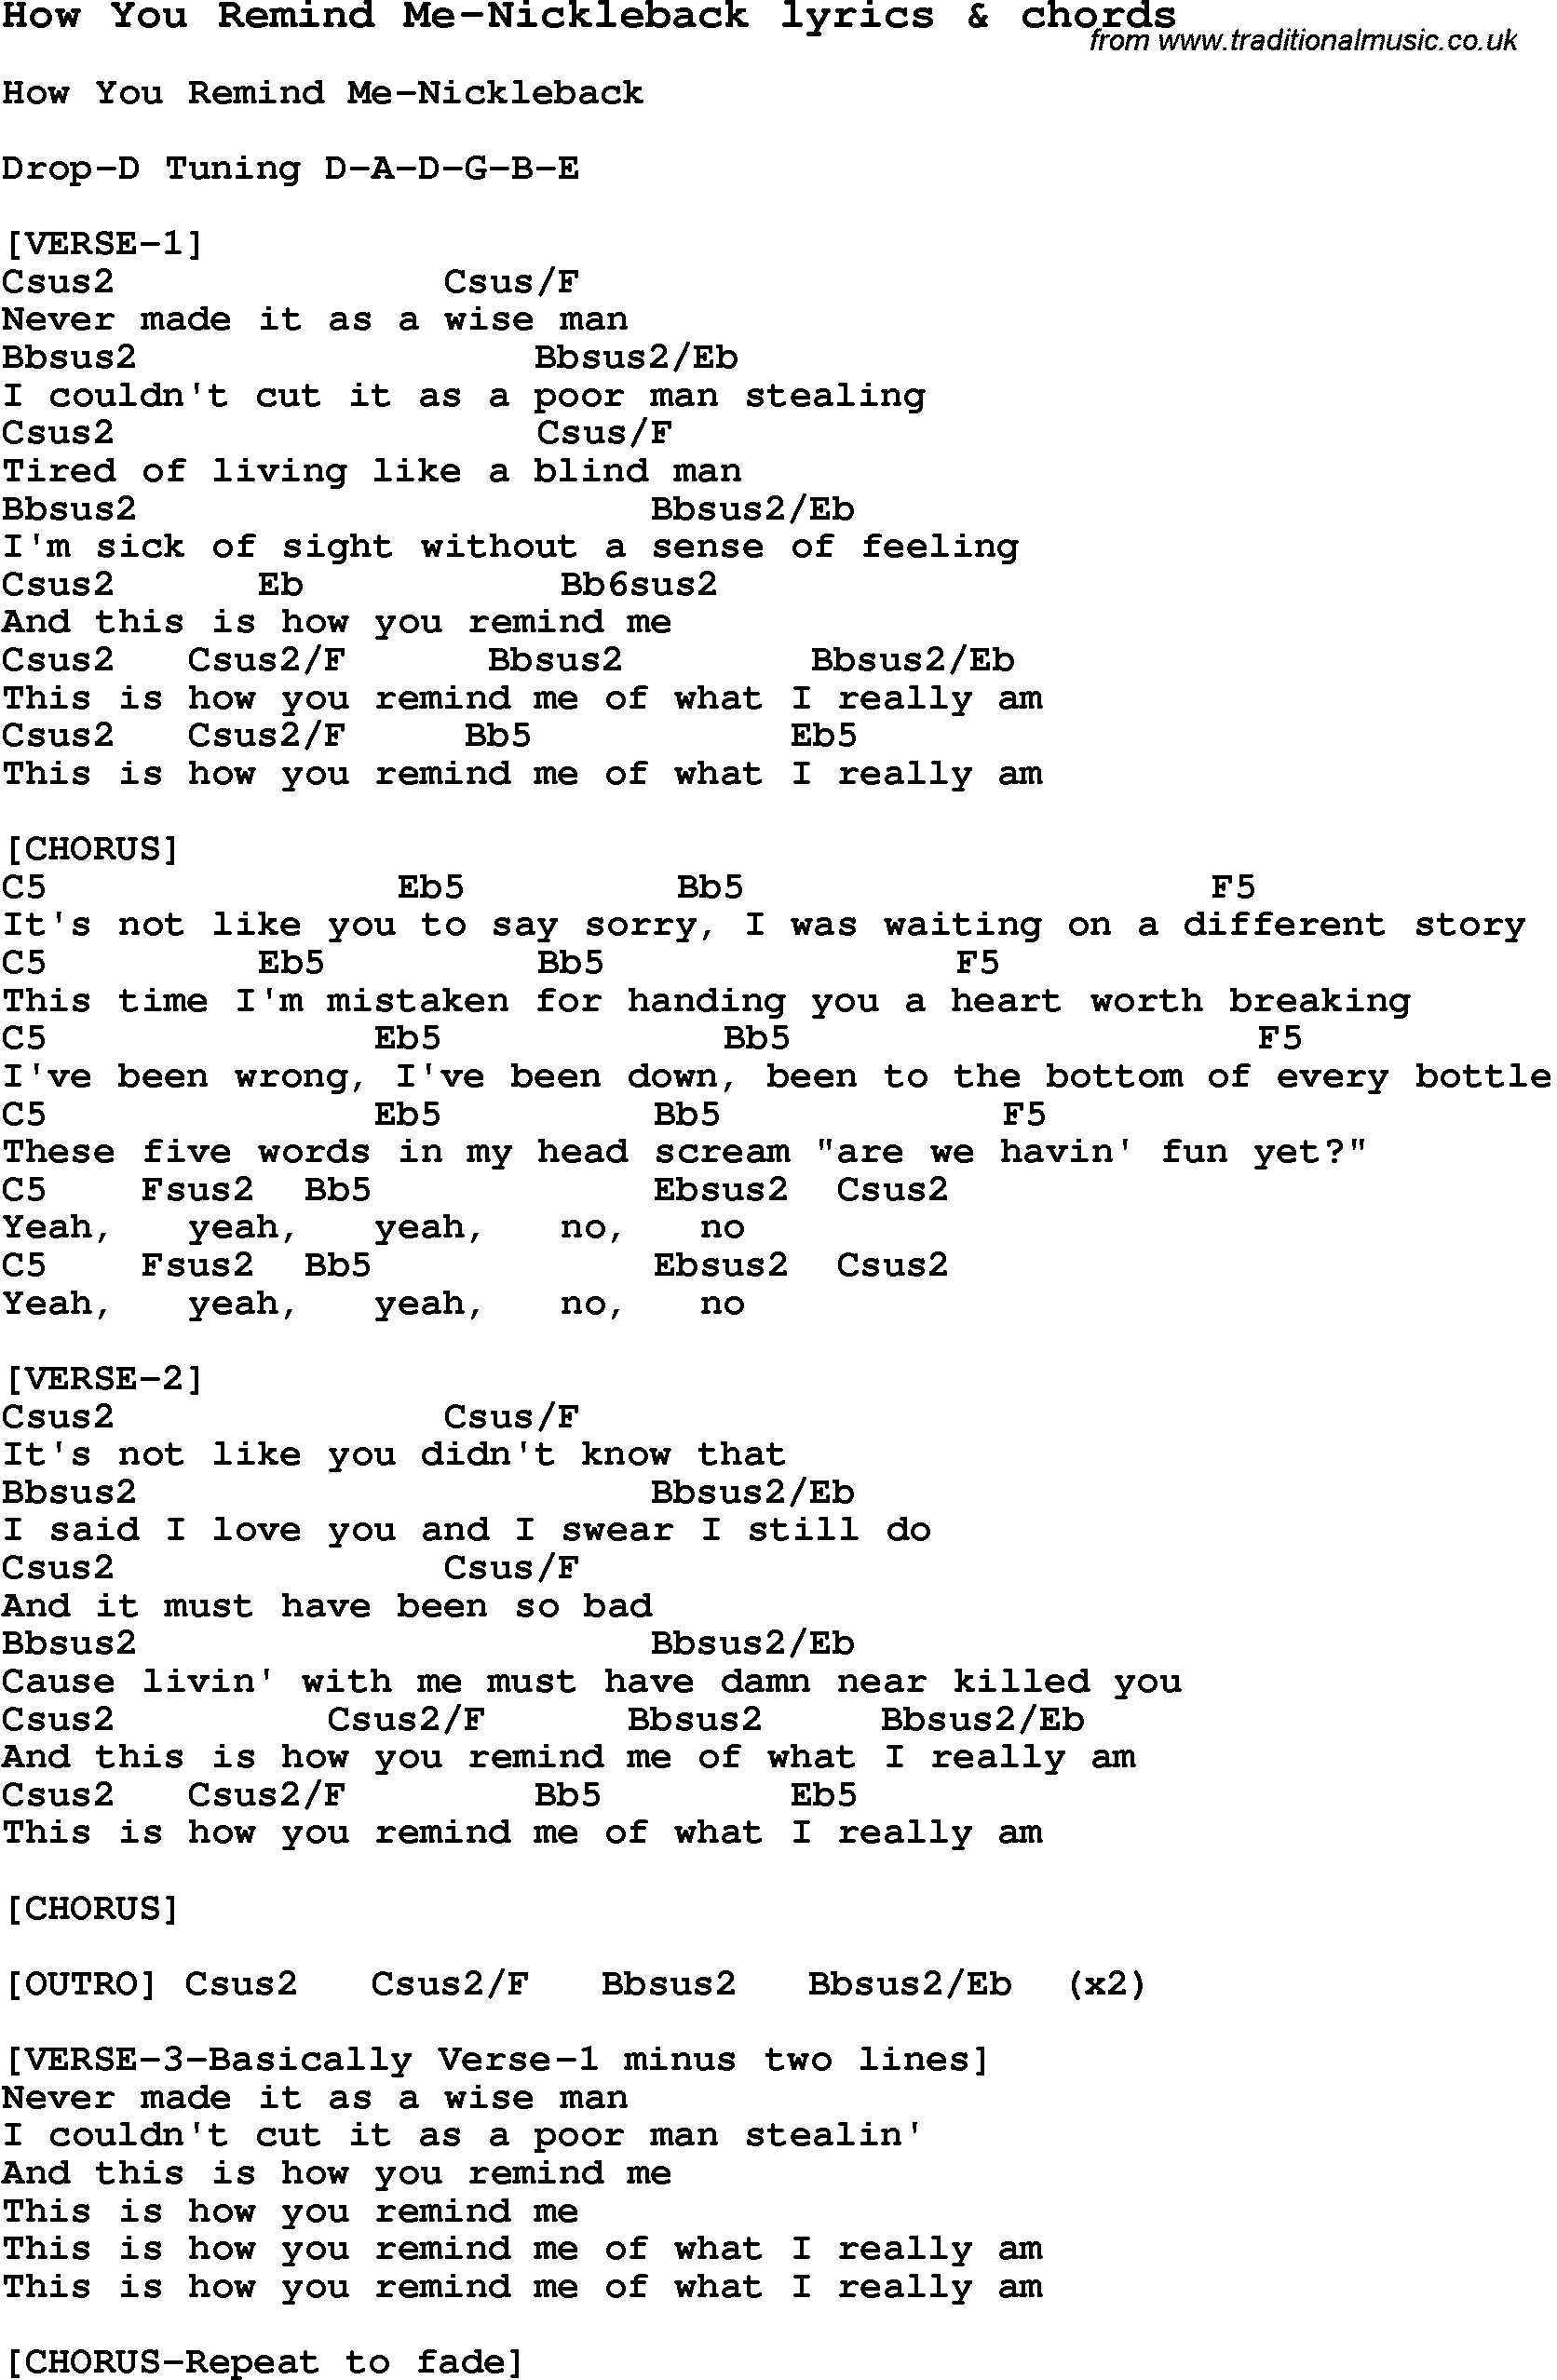 Love Song Lyrics For How You Remind Me Nickleback With Chords For